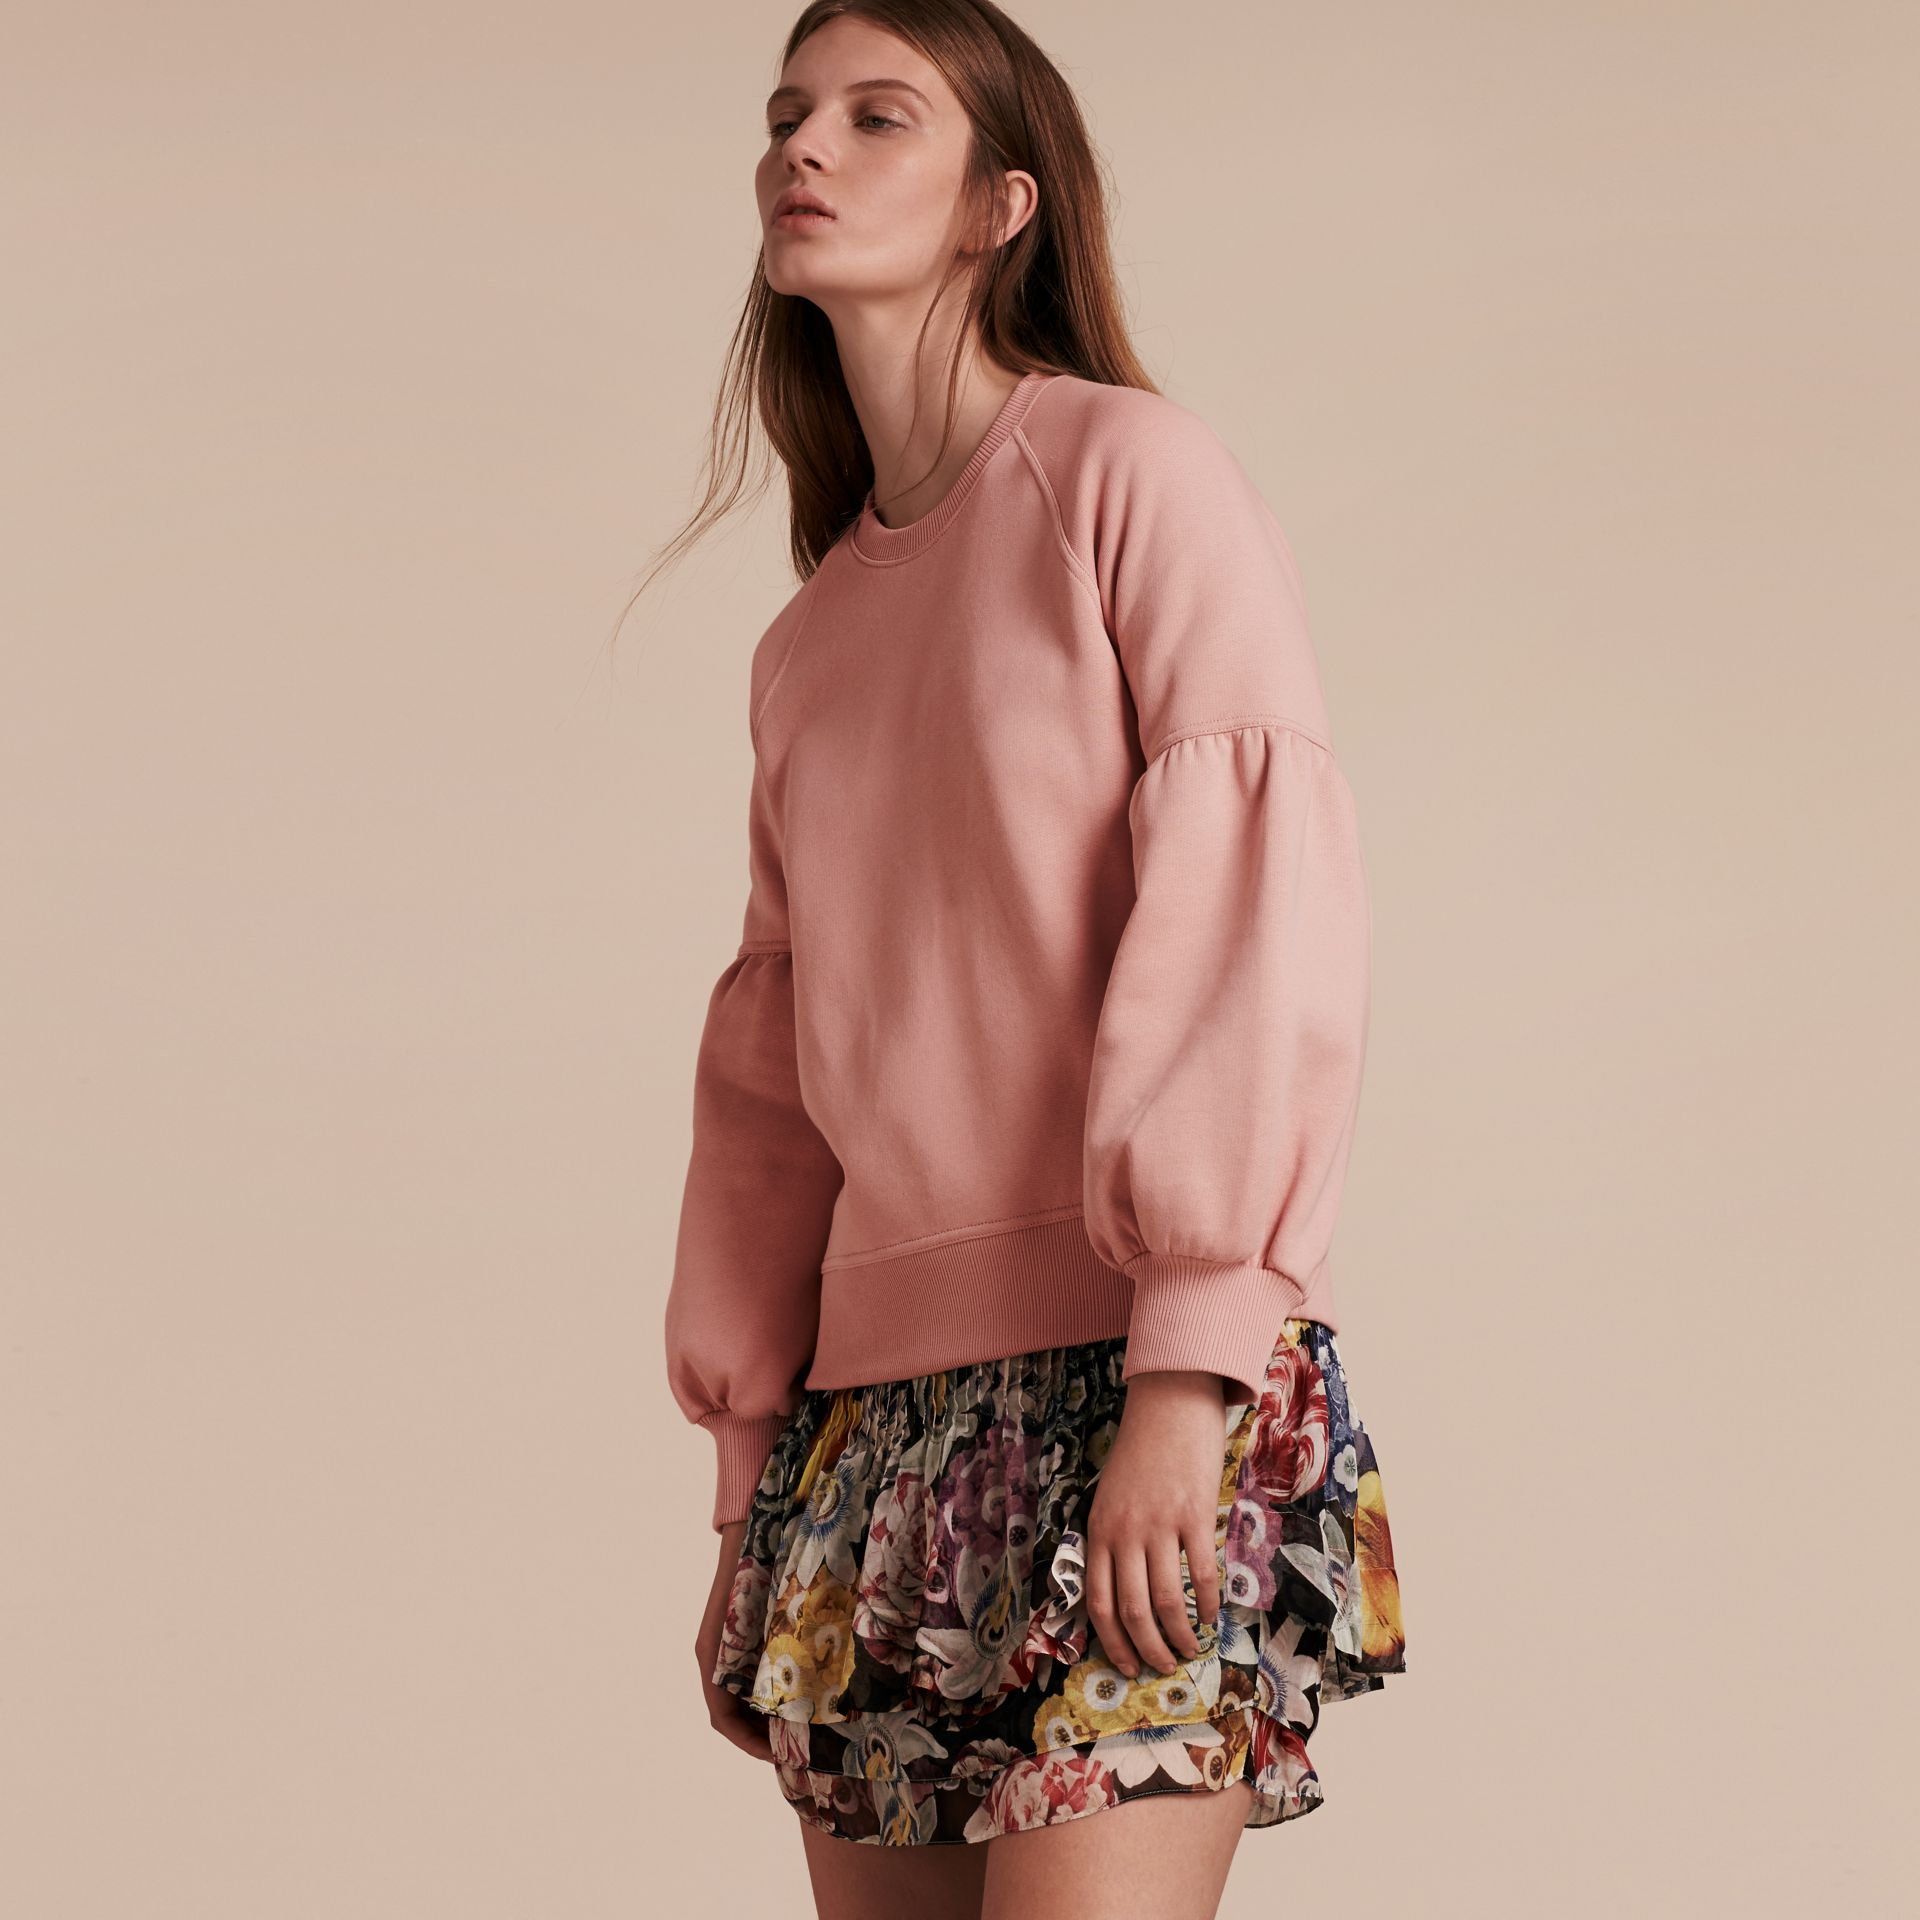 Sweat-shirt en jersey brossé avec manches cloches Rose Cendré - photo de la galerie 6